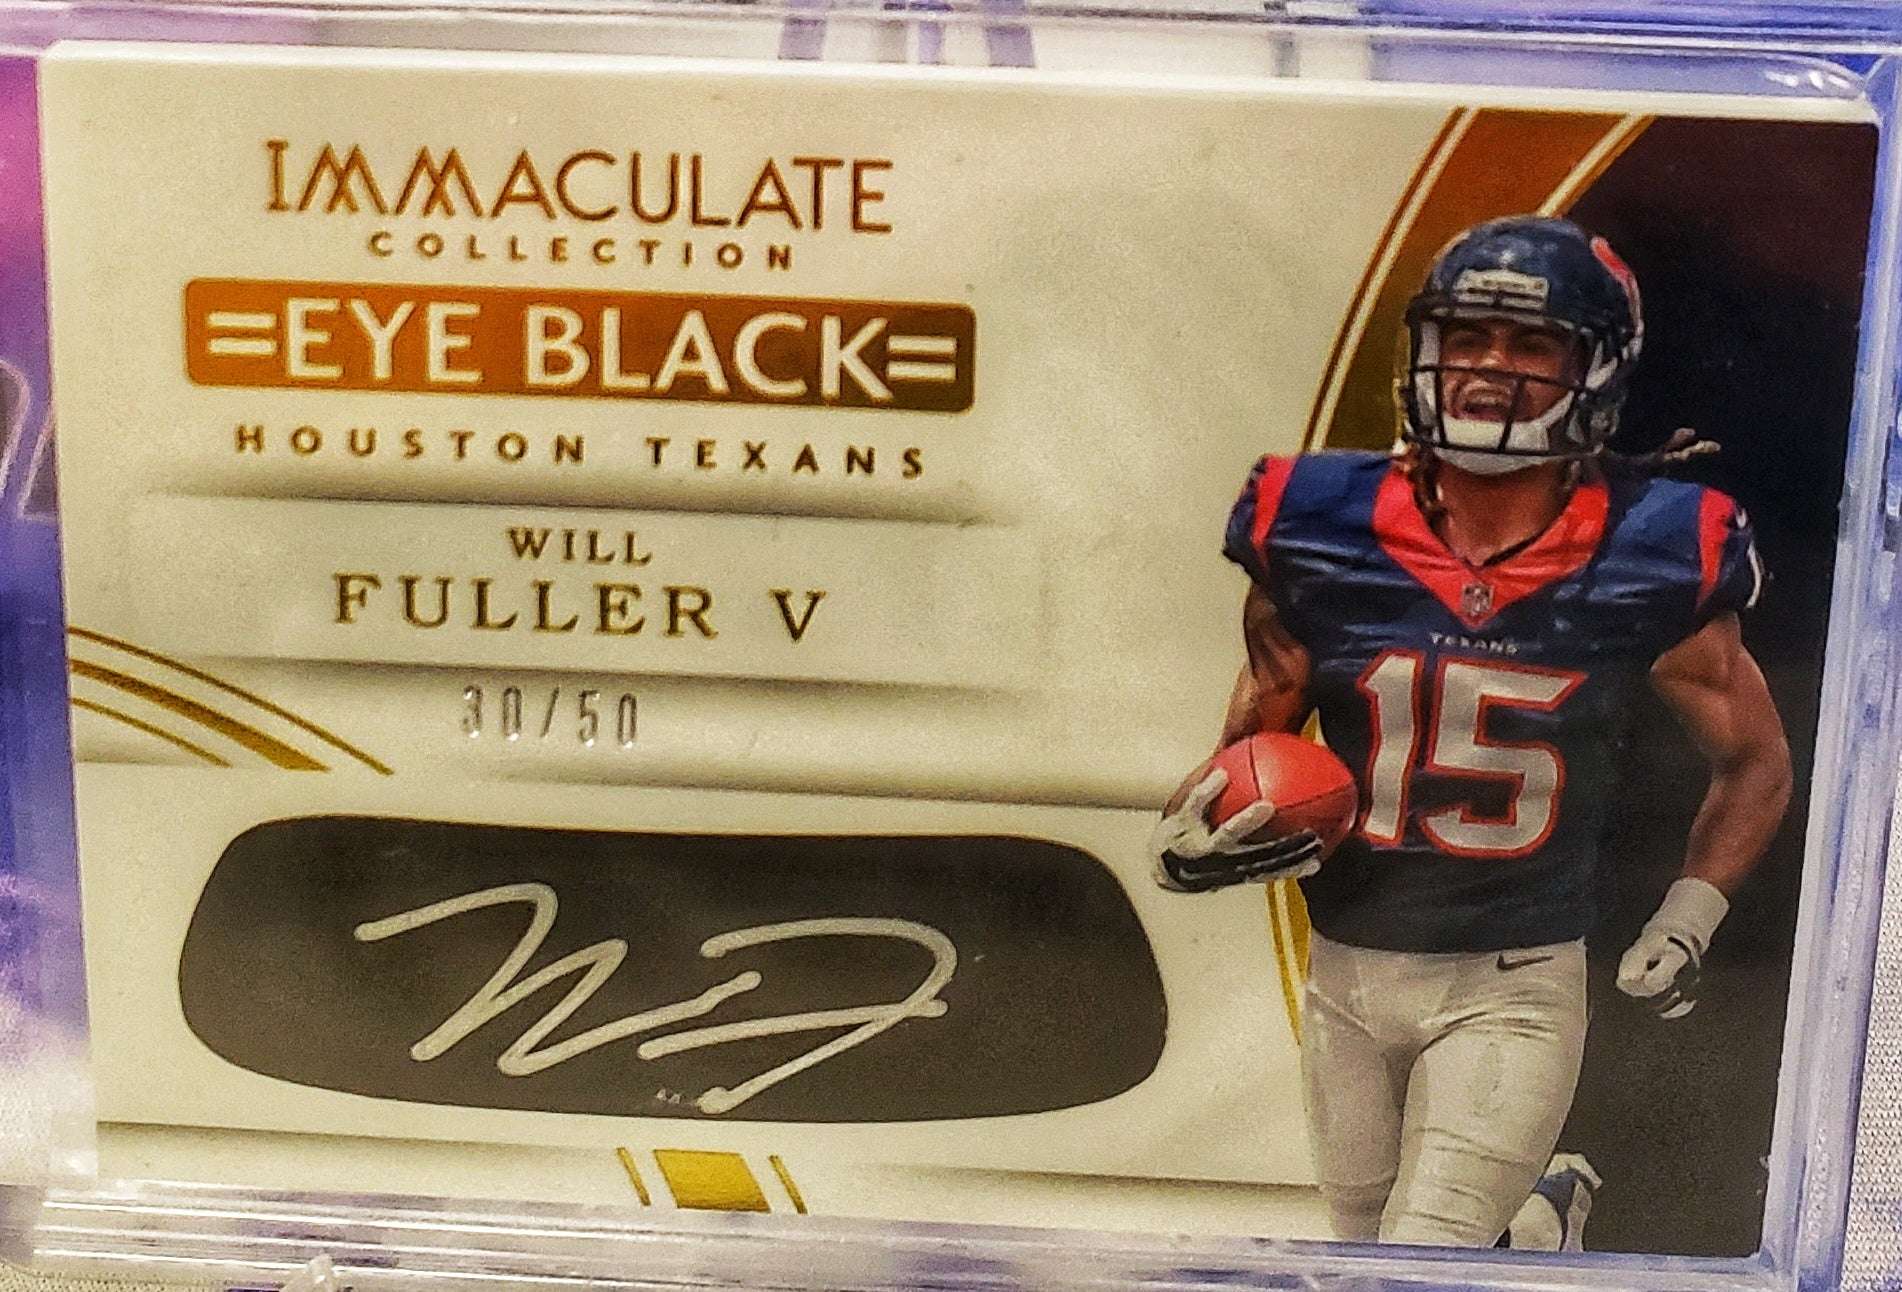 (NEW) 2016 Panini Immaculate Will Fuller Eye Black Autograph RC #/50